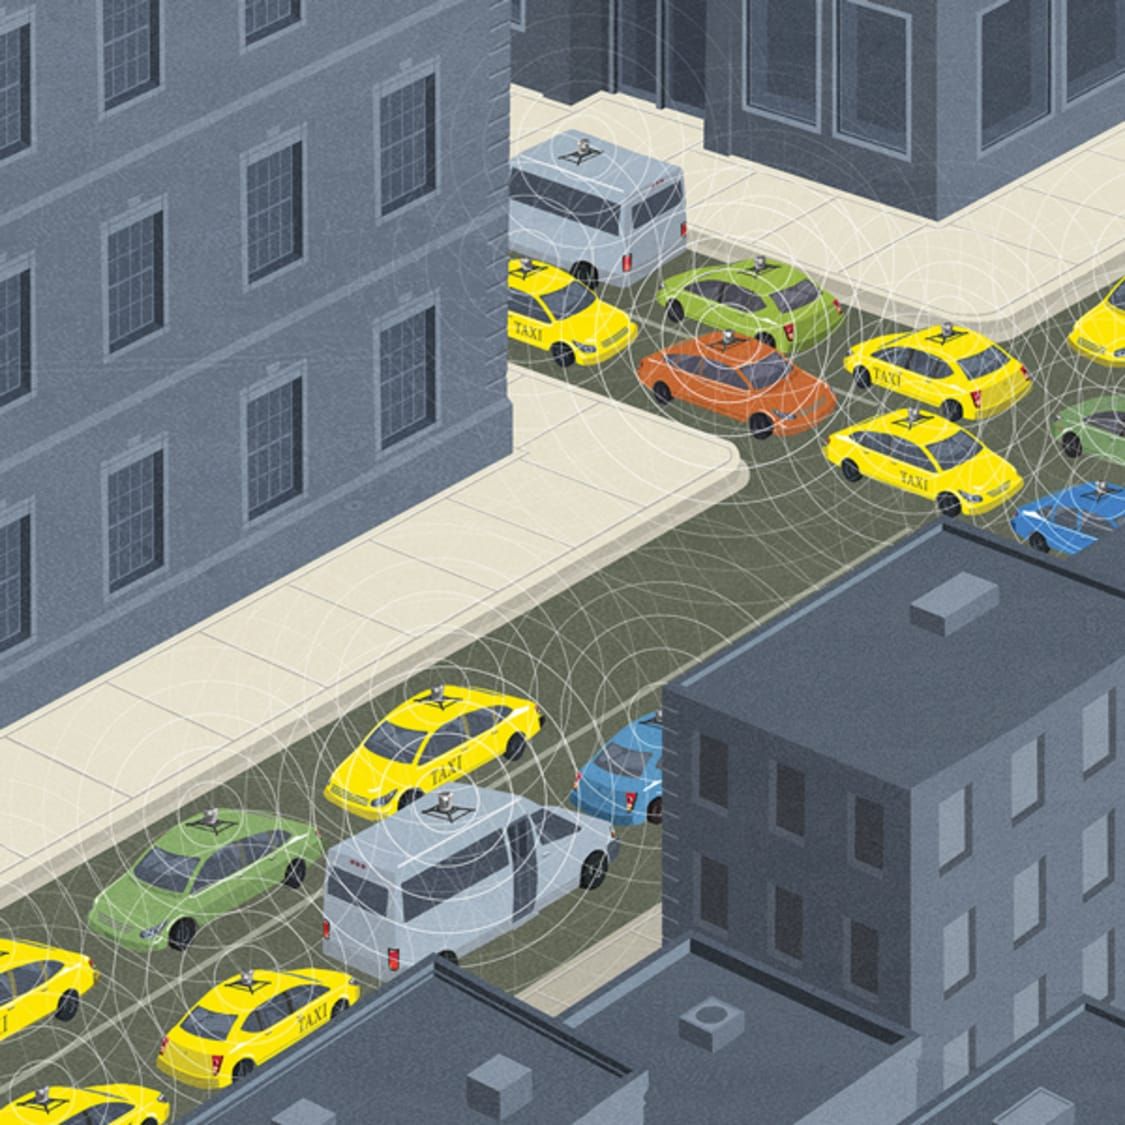 Self-Driving Vehicles, Robo-Taxis, and the Urban Mobility Revolution